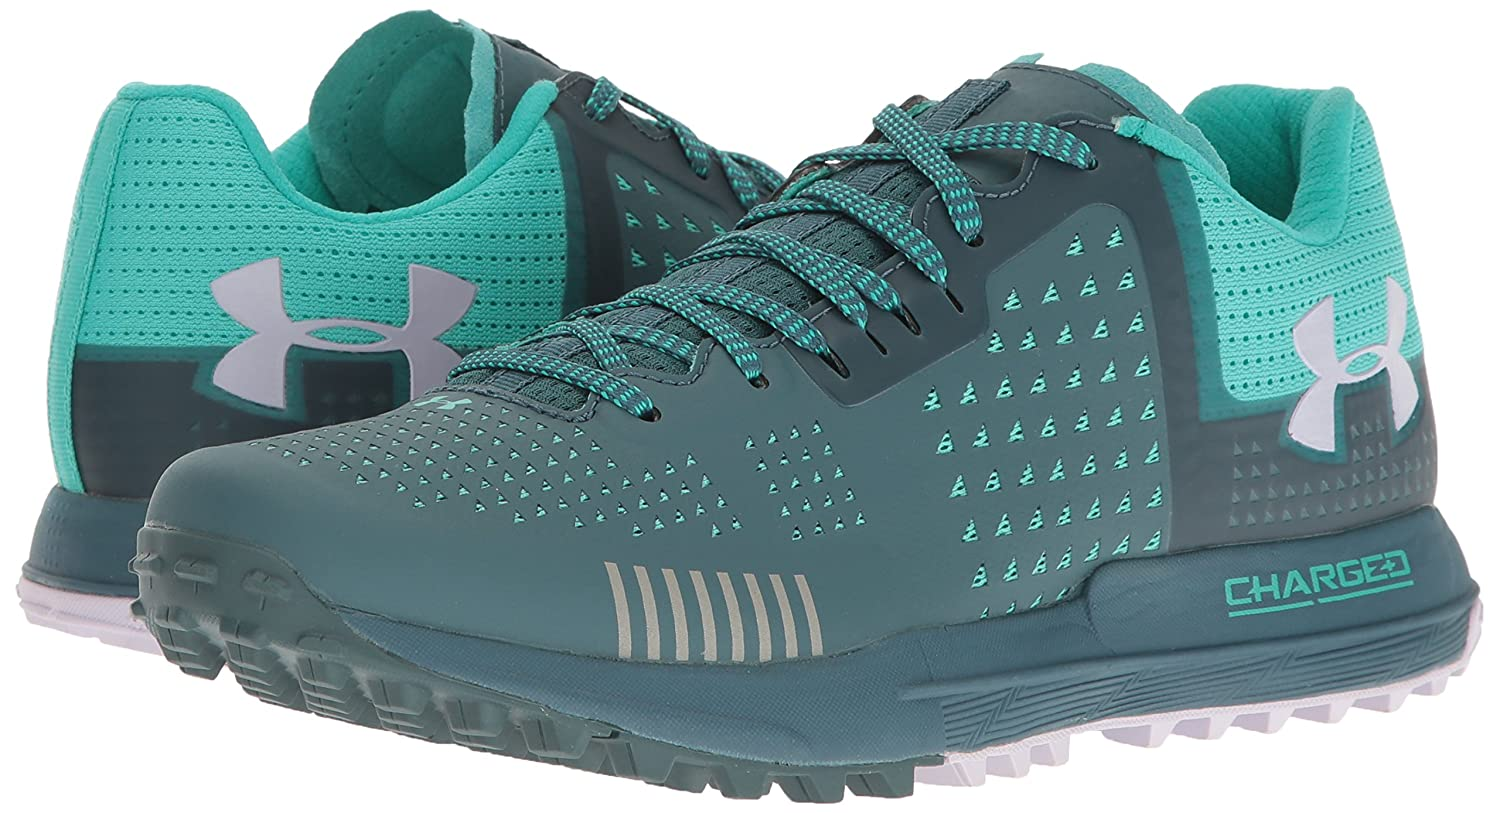 Under Armour Zapatos Para Correr Sendero Amazon jJ7Ioh